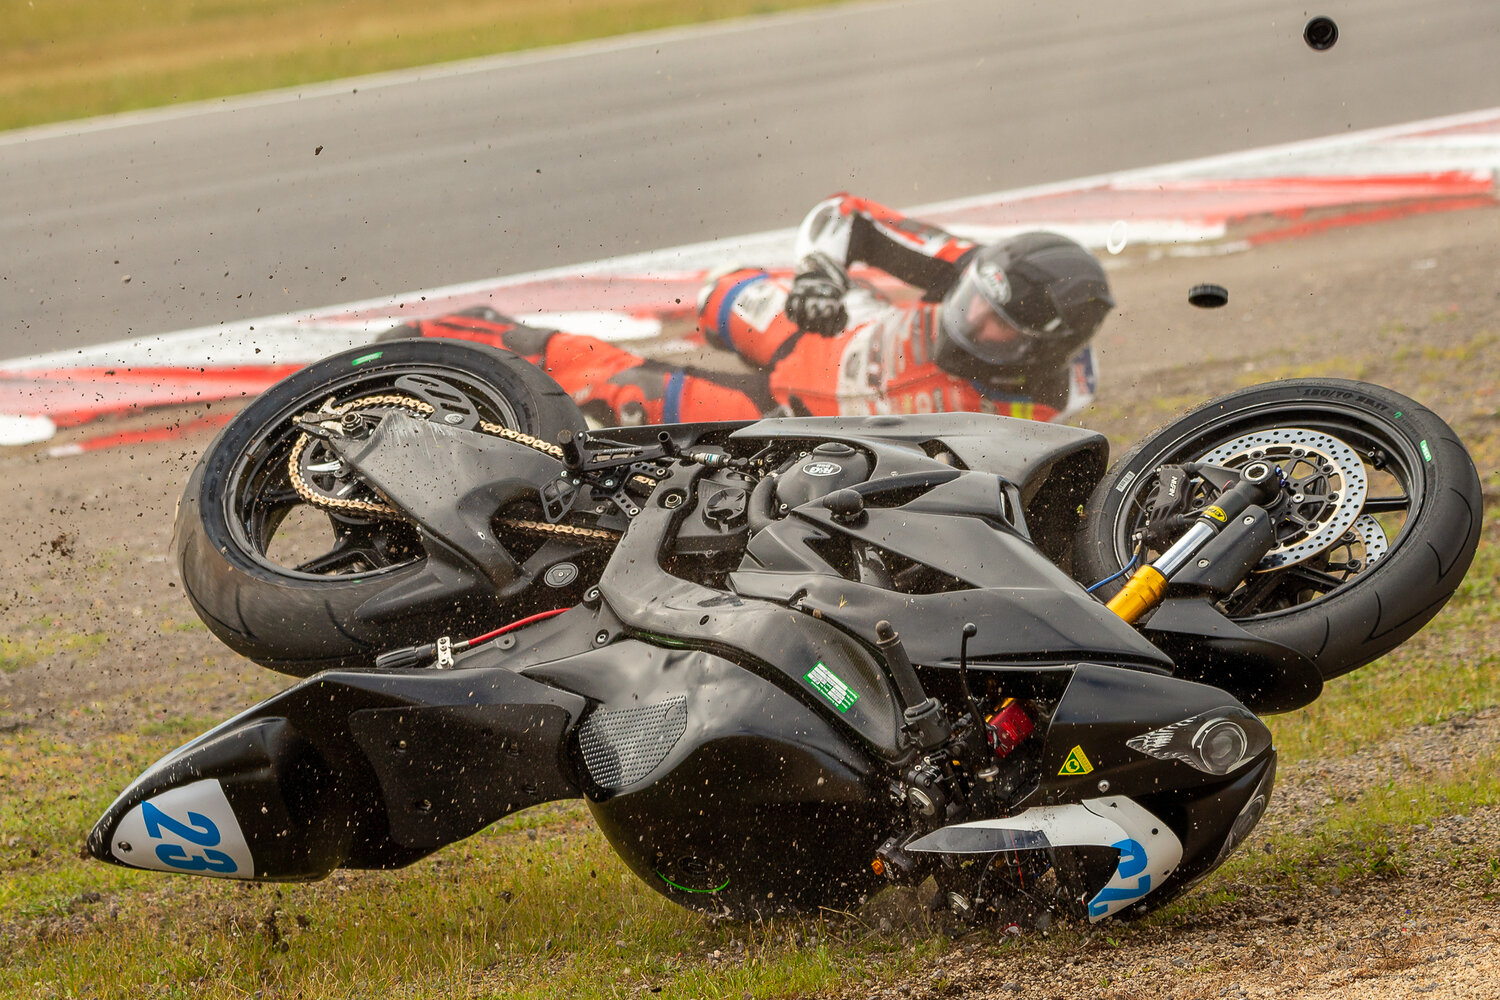 Ryan Sellen 23 riding for Kawasaki BCperformance crashes on T11 during round 5 of the Australian Superbike Championship on September 8, 2019 at Winton Motor Raceway, Victoria. (Image Dave Hewison/ Speed Media)